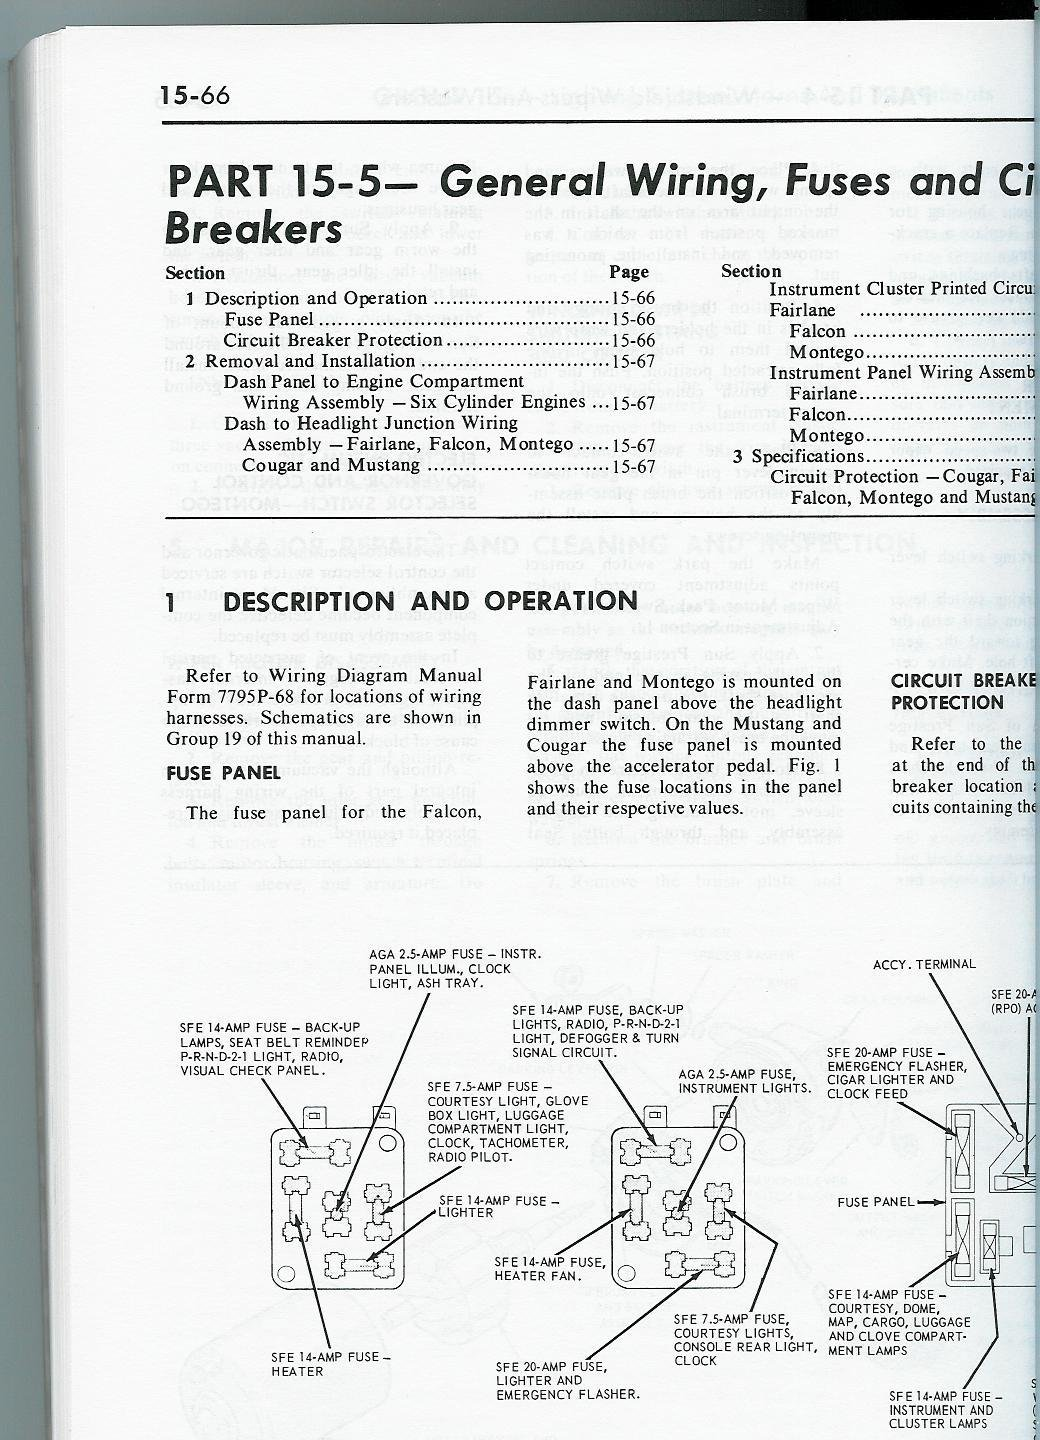 1967 1968 Ford Thunderbird Fuse Box Diagram